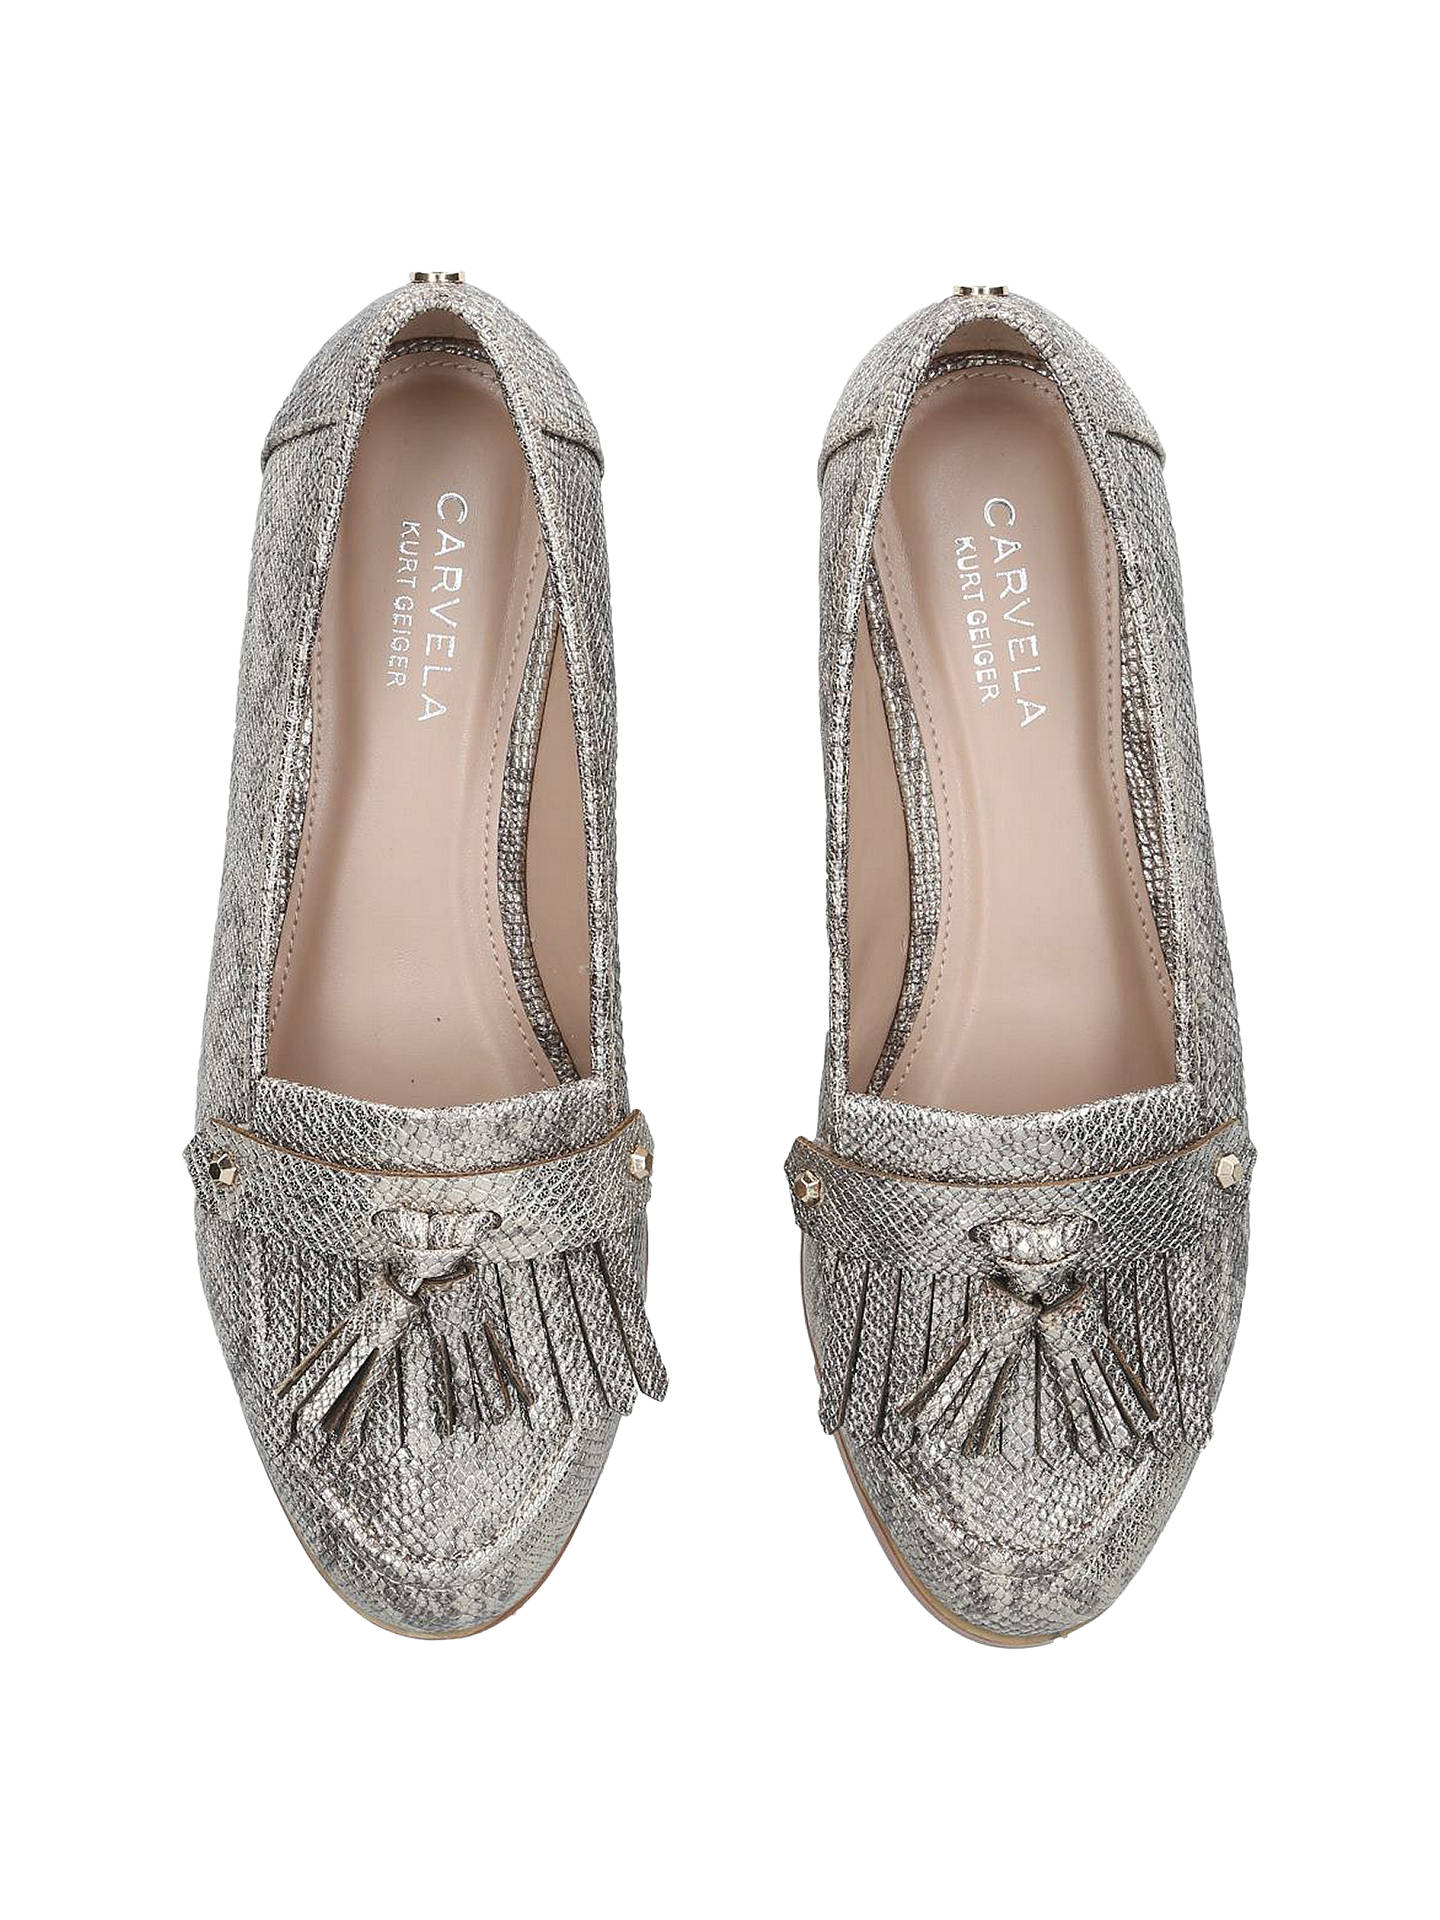 first look exquisite design discount price Carvela Magpie Tassel Loafers, Gold at John Lewis & Partners